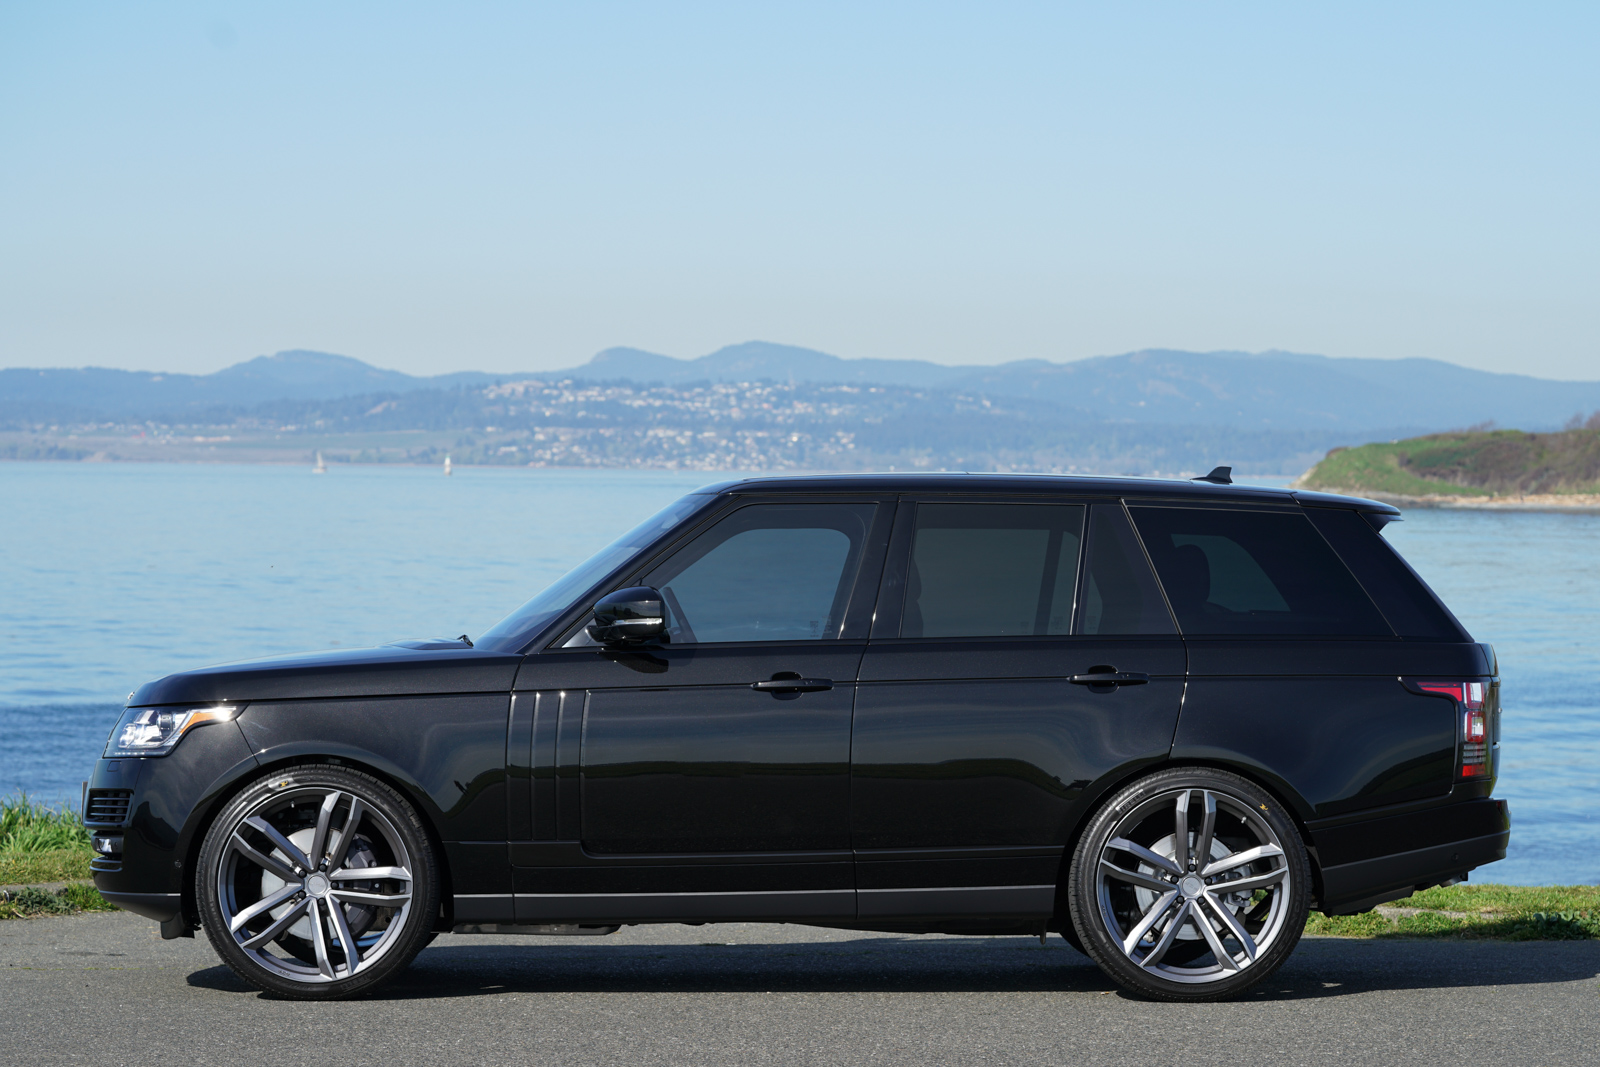 2016 Range Rover Supercharged Silver Arrow Cars Ltd For Sale